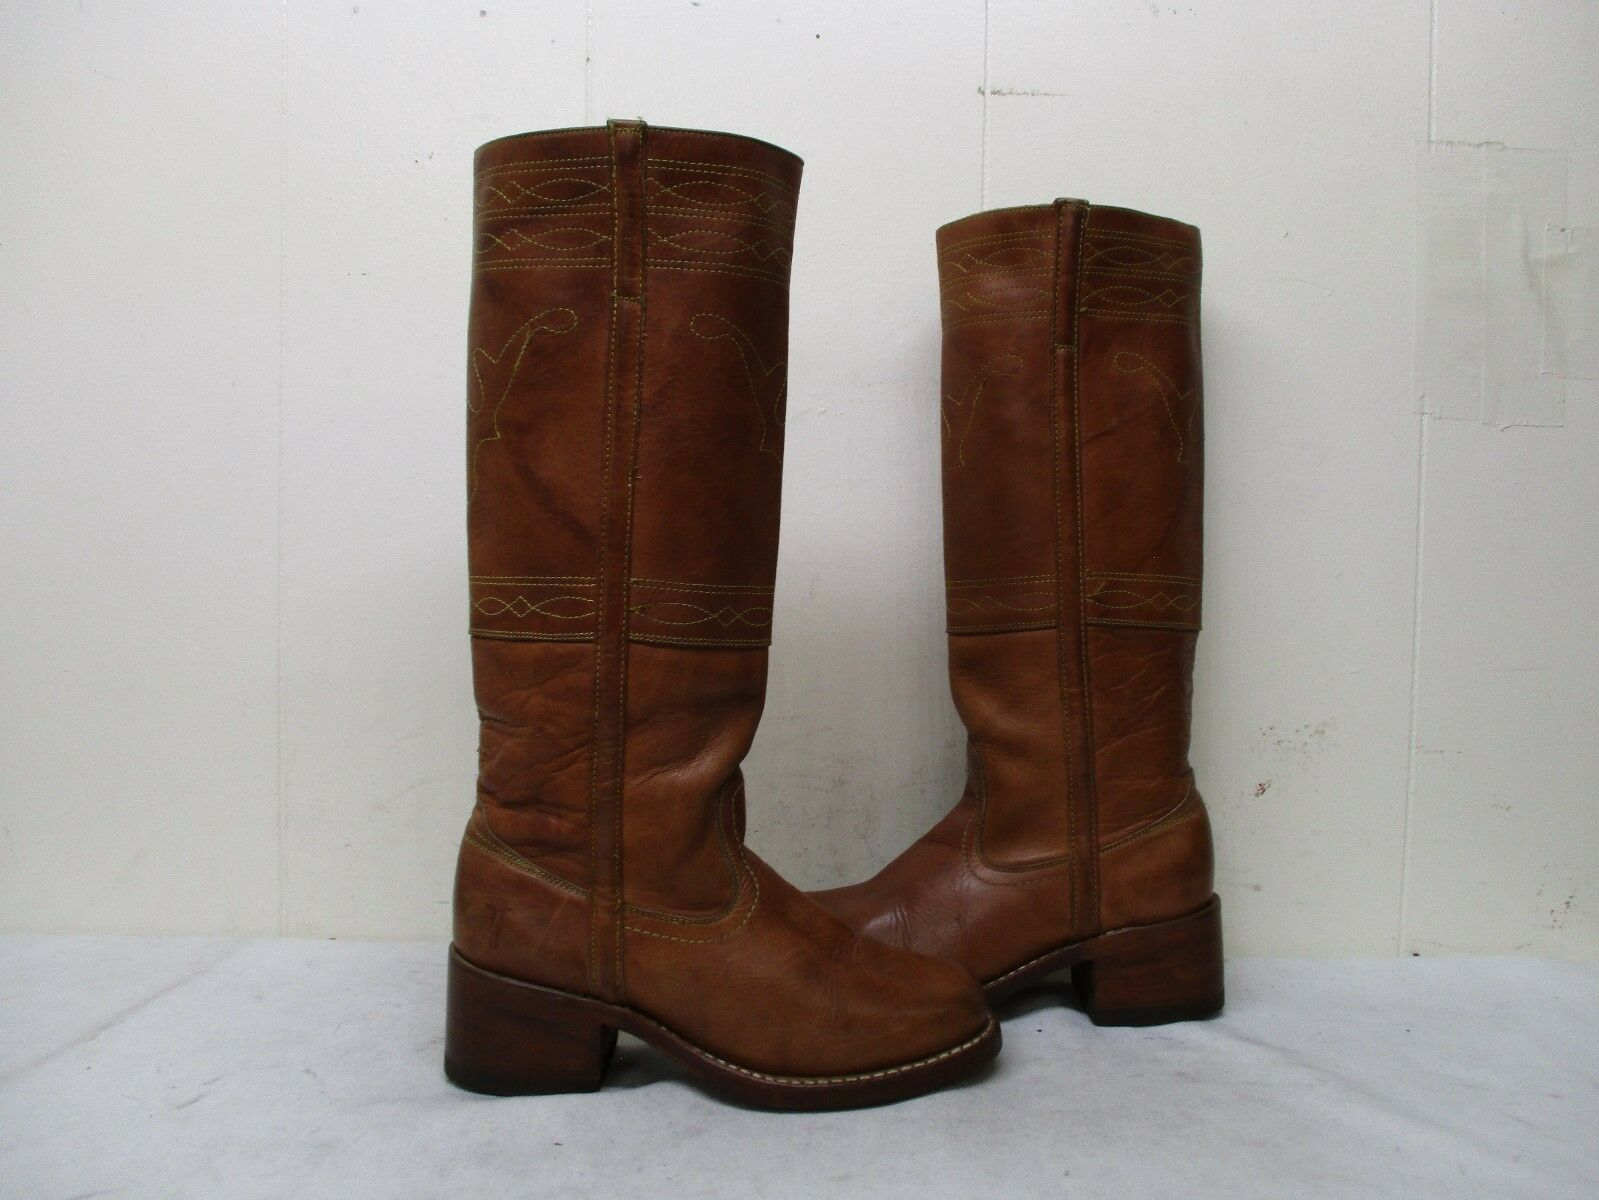 Frye Brown Leather Campus Knee High Boots Womens Size 6.5 B Style 77370